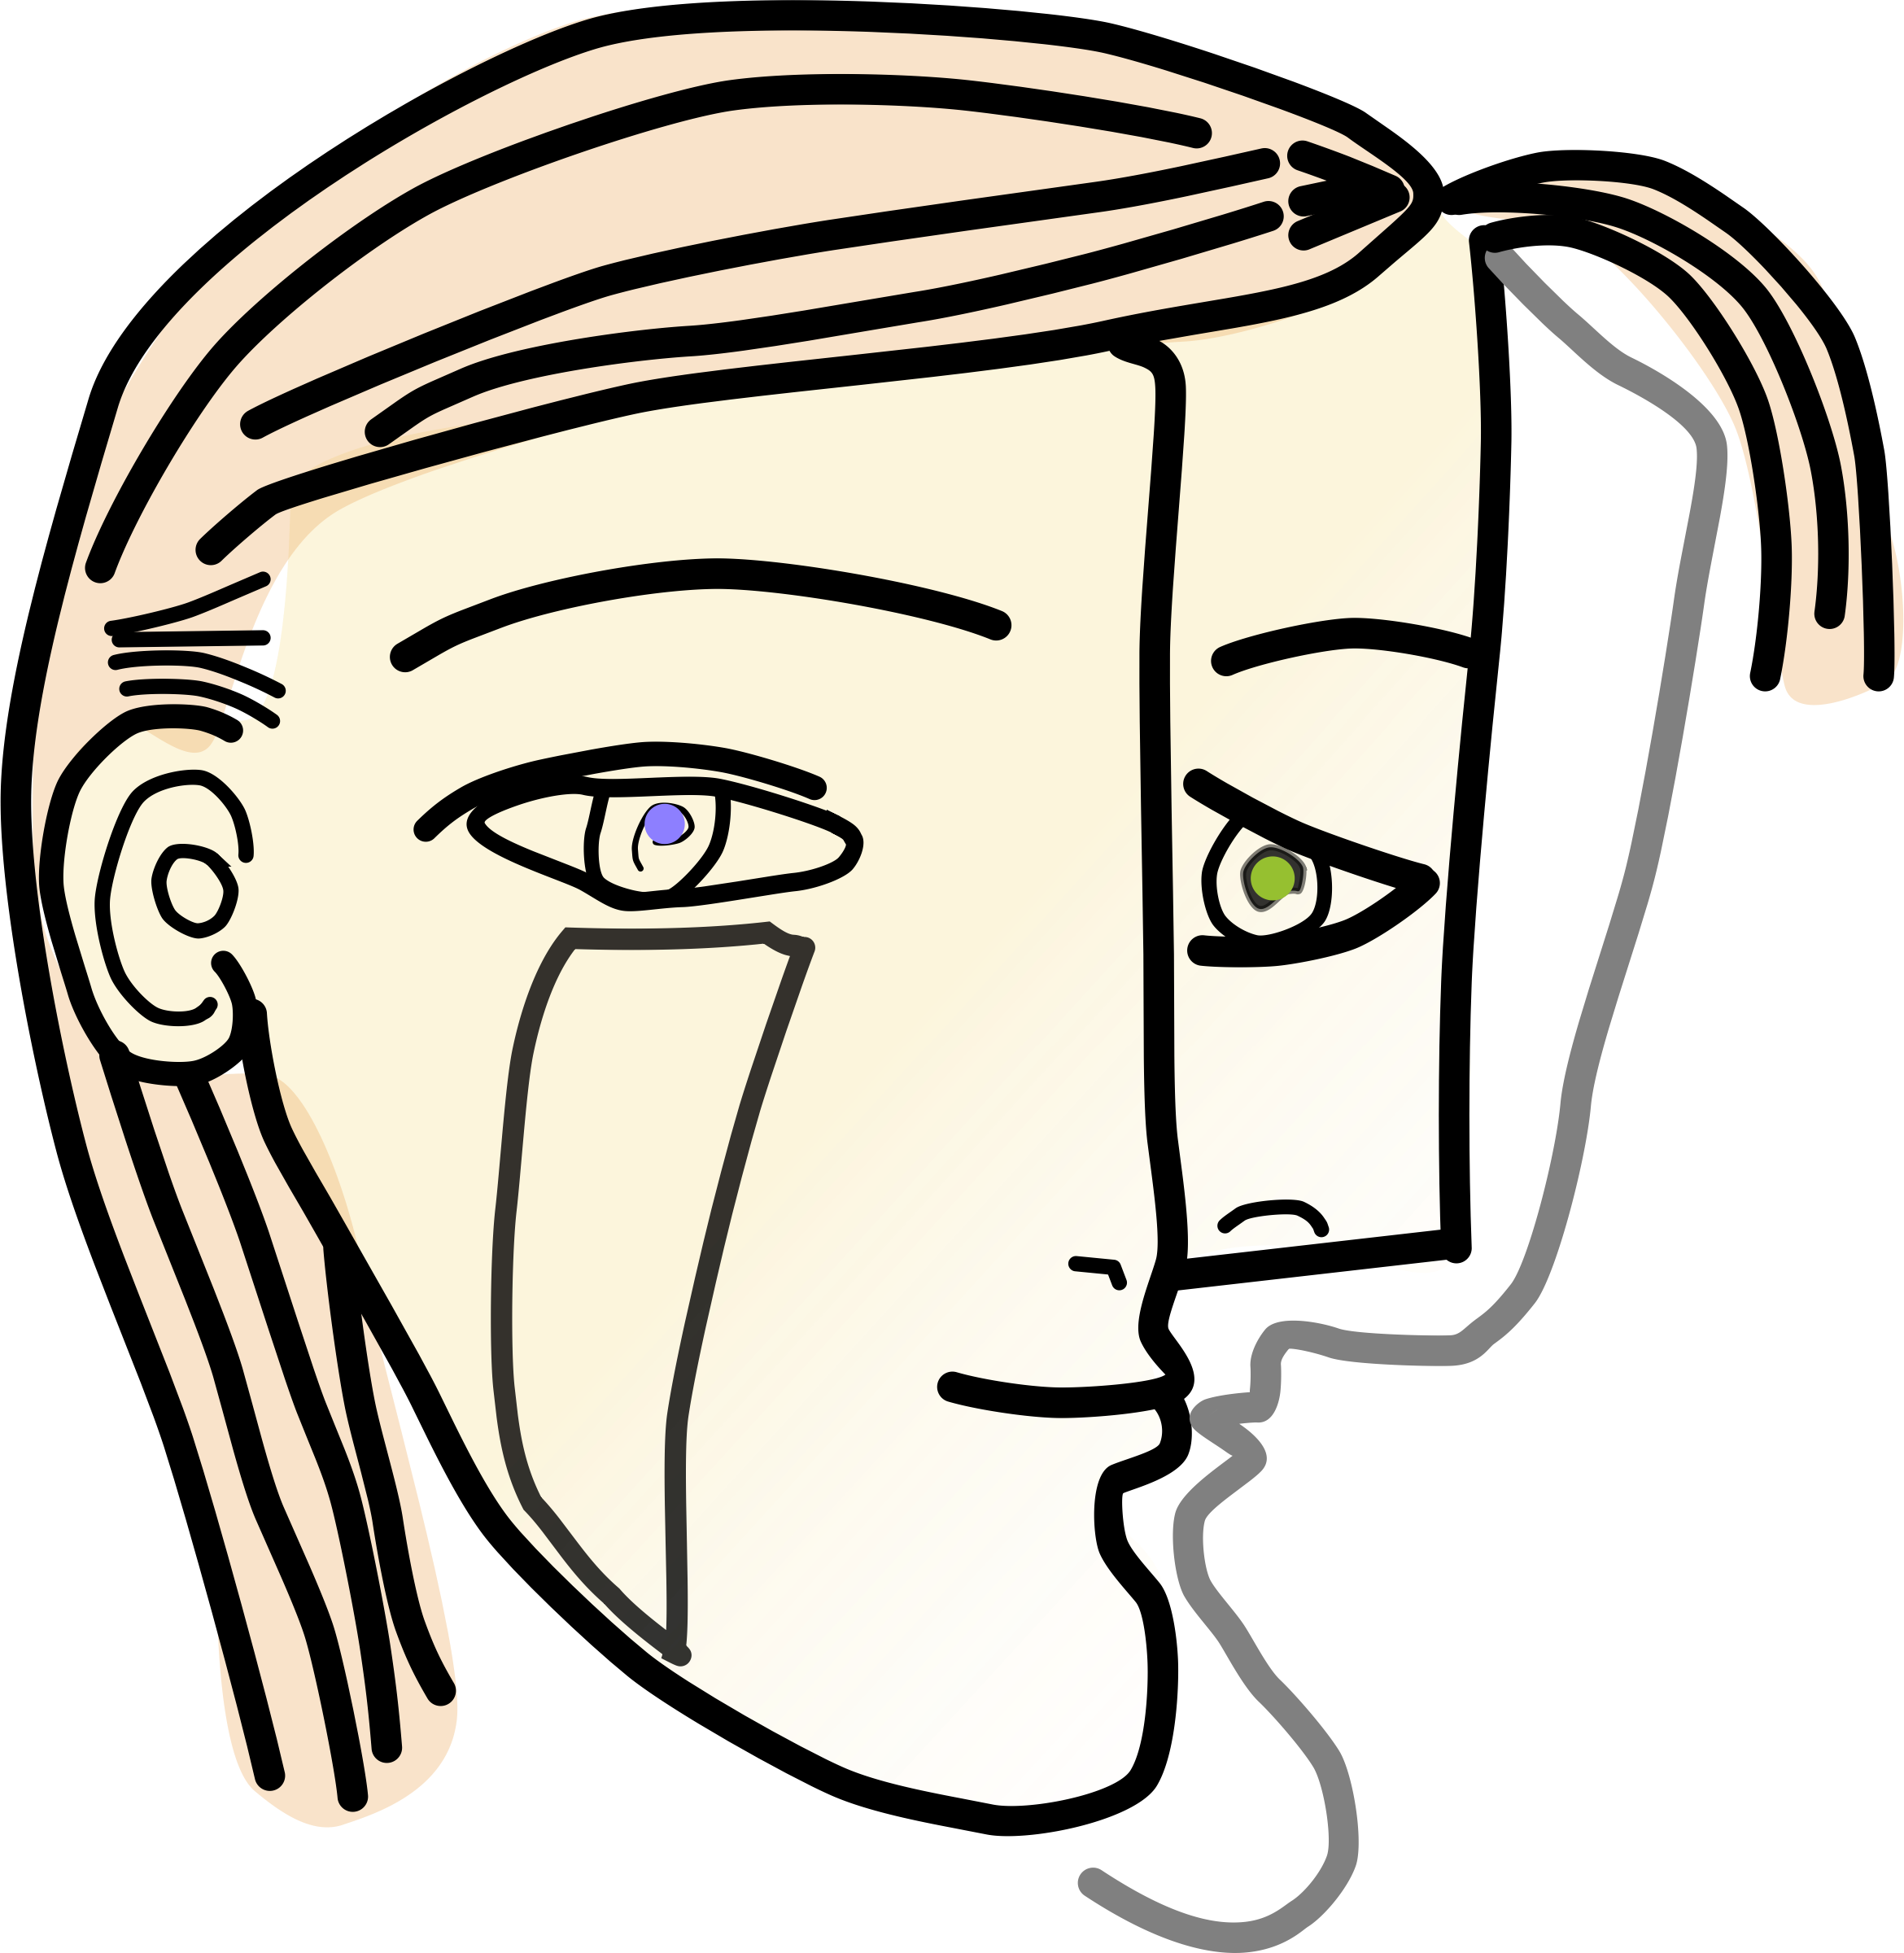 Cubist Woman Head by jliard